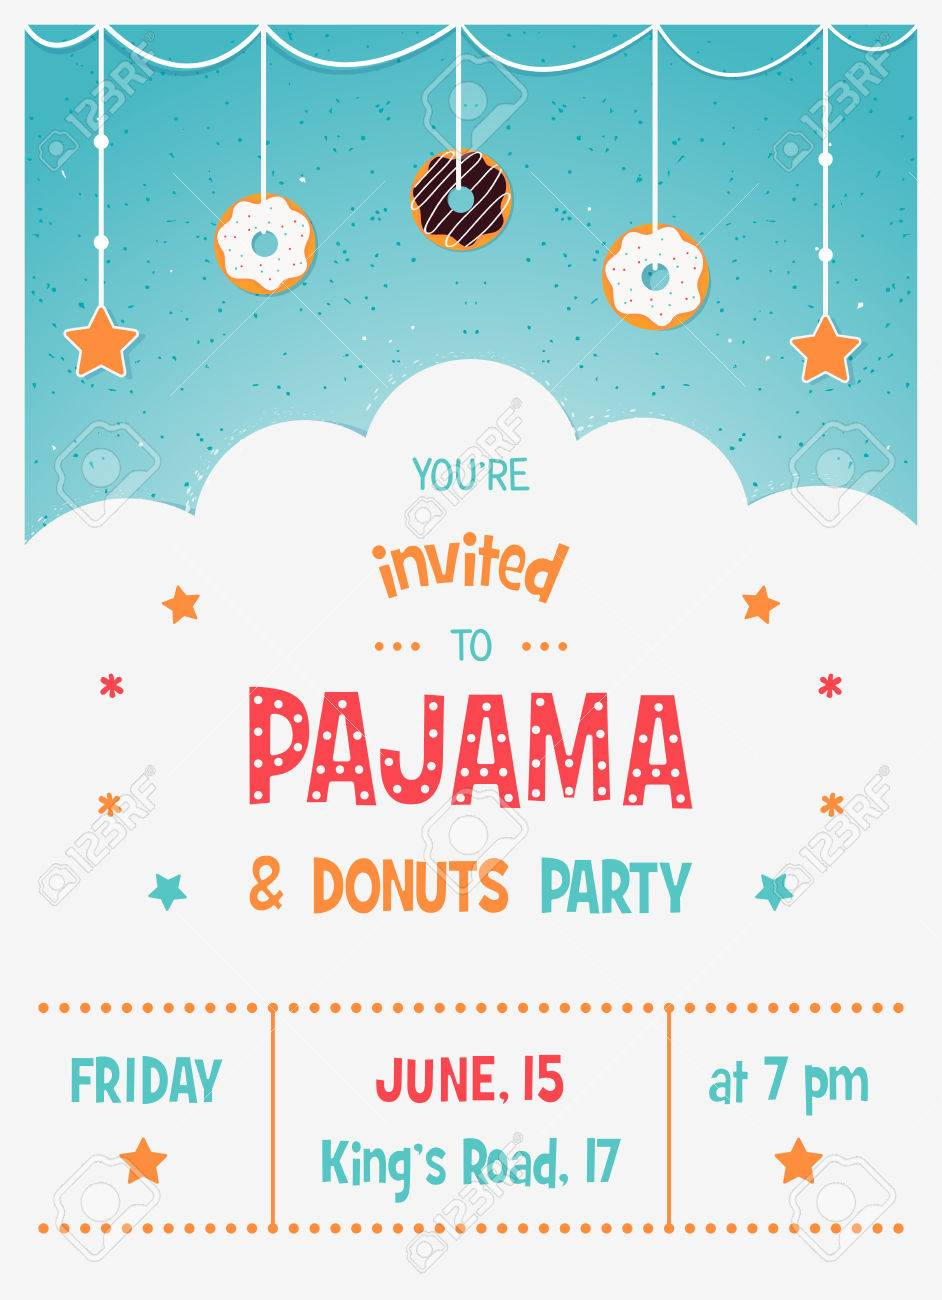 Pajama And Donuts Kids Party Invitation Card Template Royalty Free